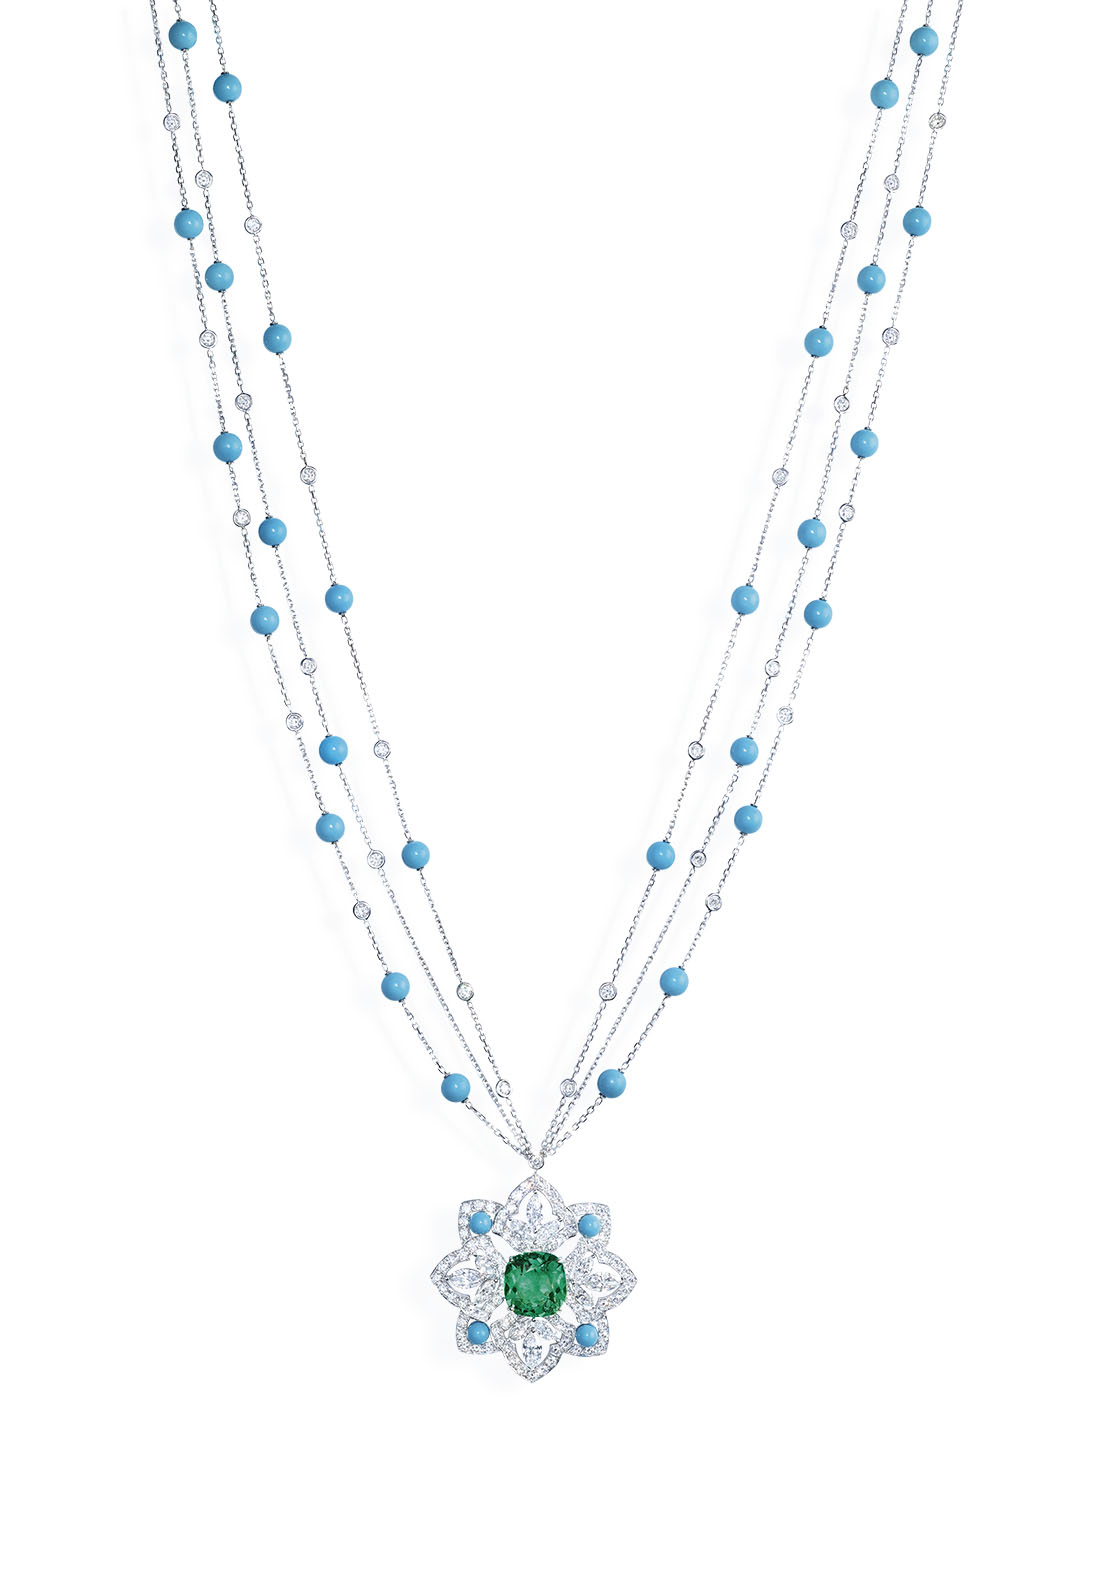 ecrets and Lights Collection by Piaget. 11.16 carat cushion cut emerald, 12 marquise cut diamonds, 151 brilliant cut diamonds, 32 turquoise beads set in 18k white gold